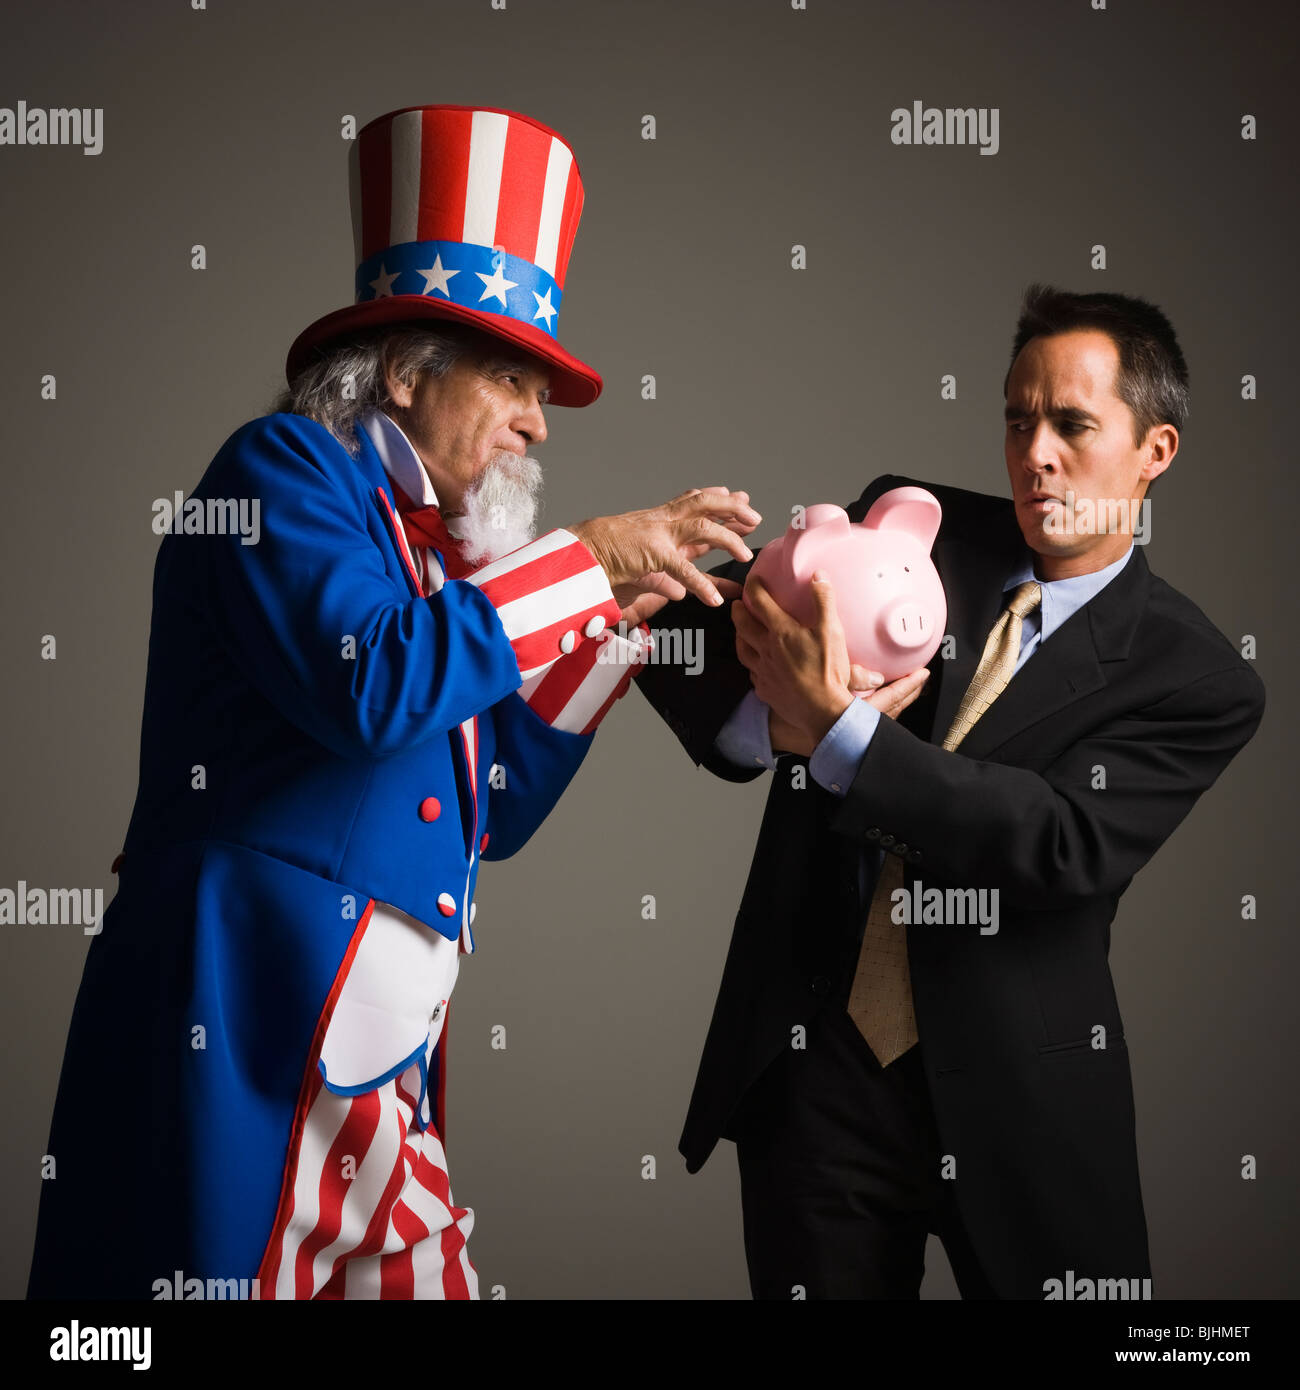 uncle same stealing a man's piggy bank - Stock Image